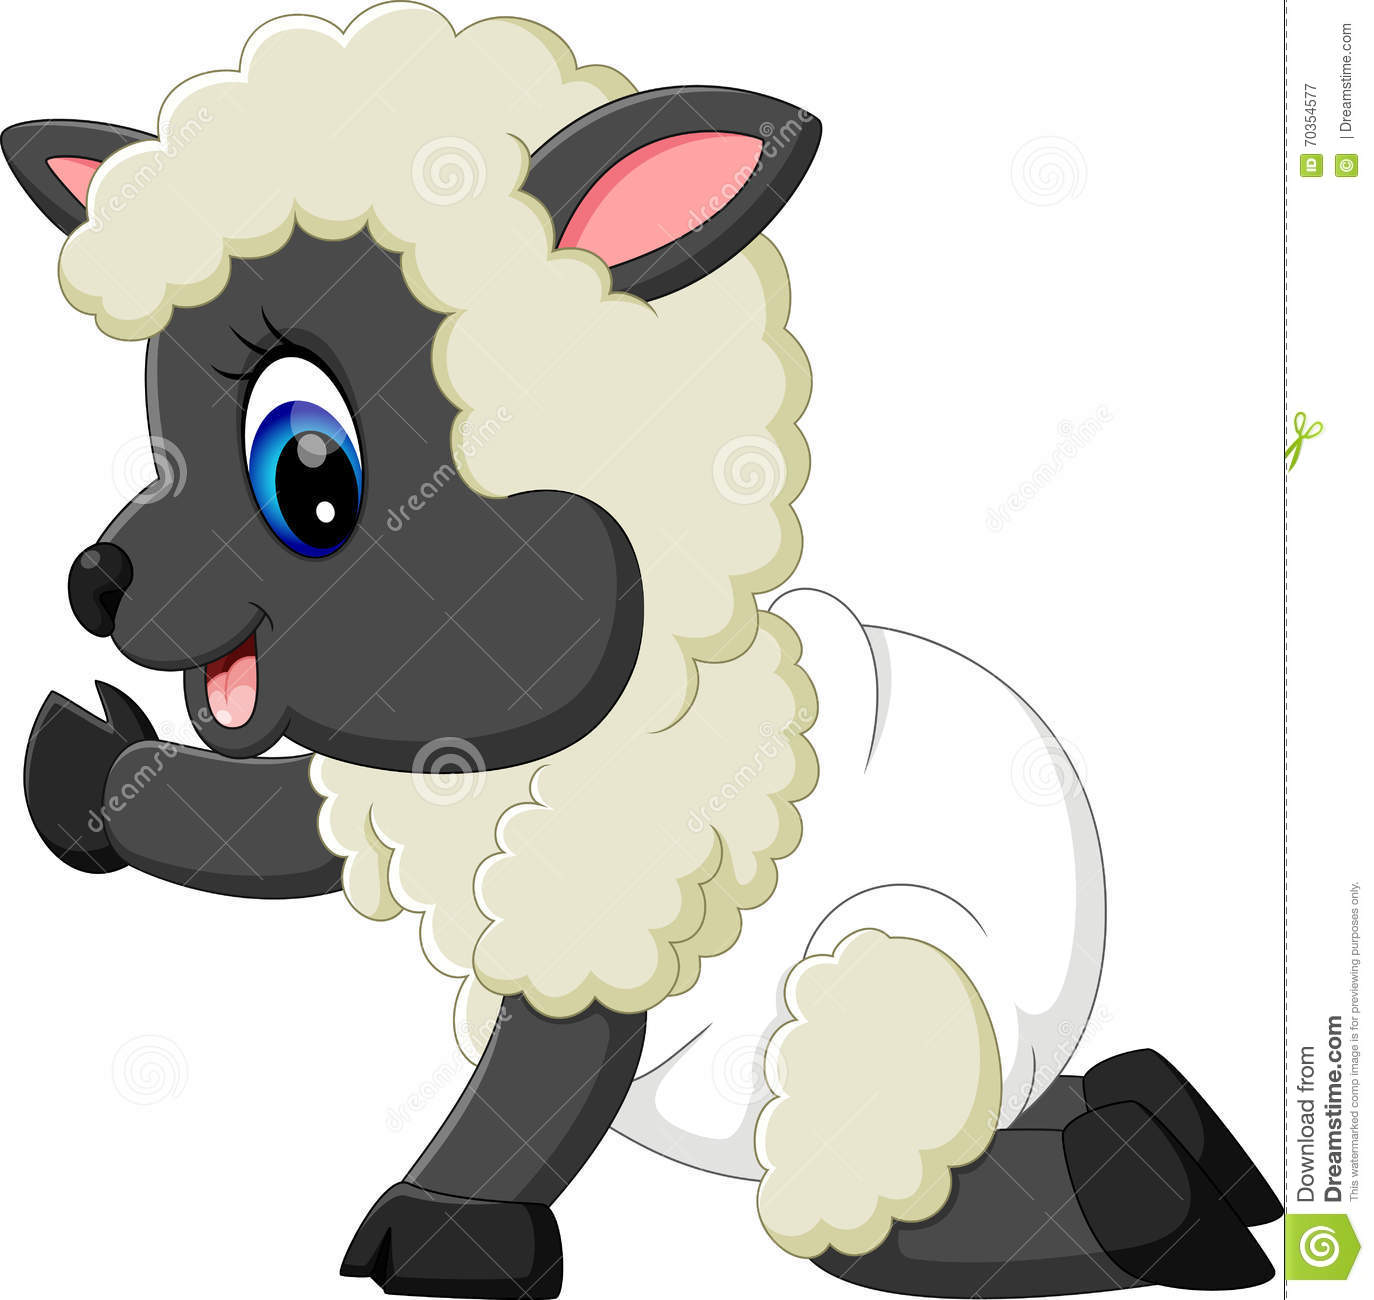 Cute baby sheep cartoon stock vector. Illustration of element - 70354577 for cute animated sheep  585ifm